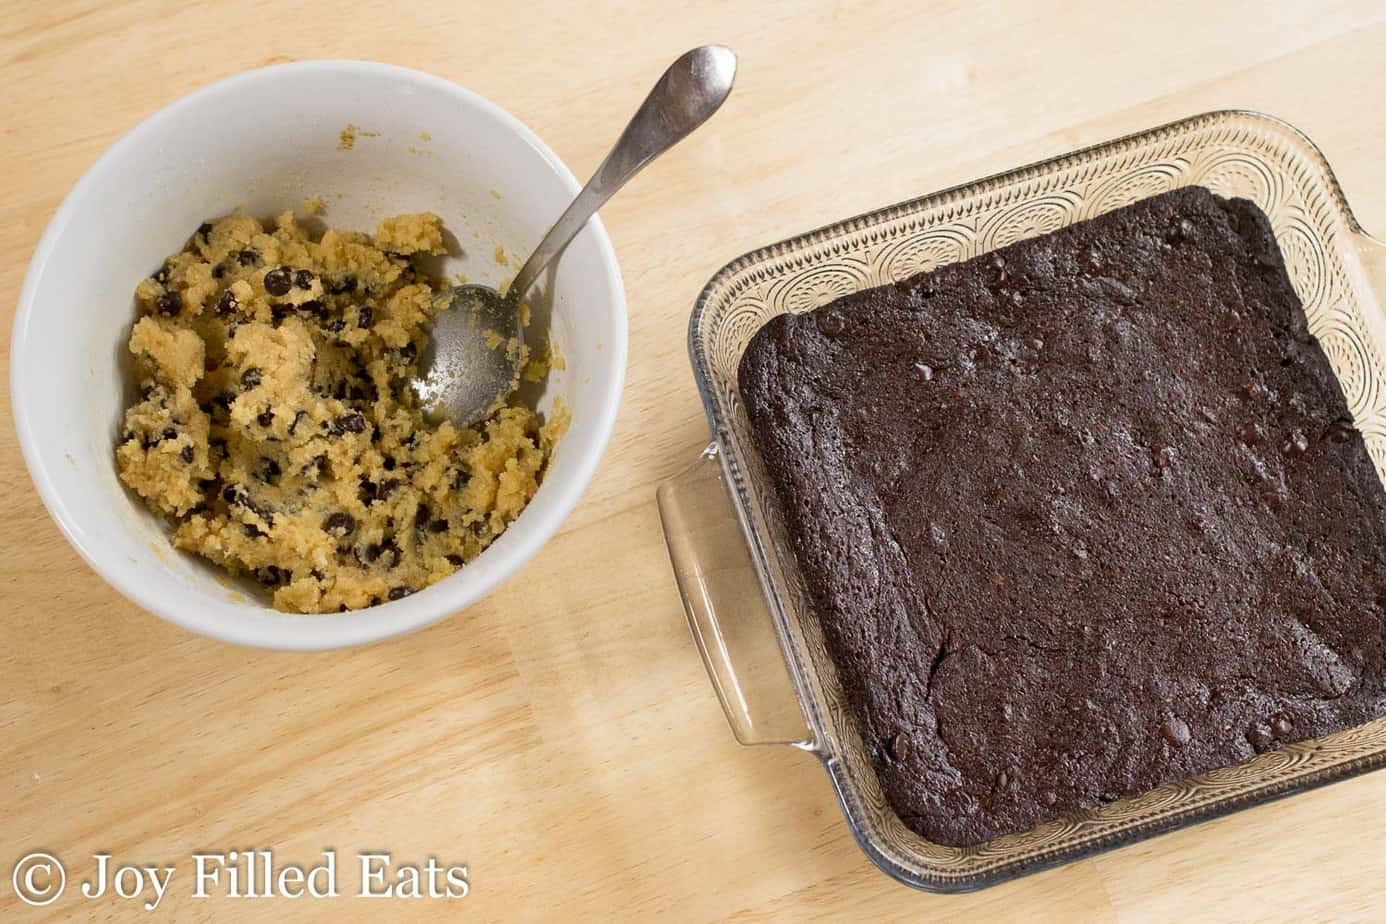 baking dish filled with brownies next to a bowl of chocolate chip cookie dough